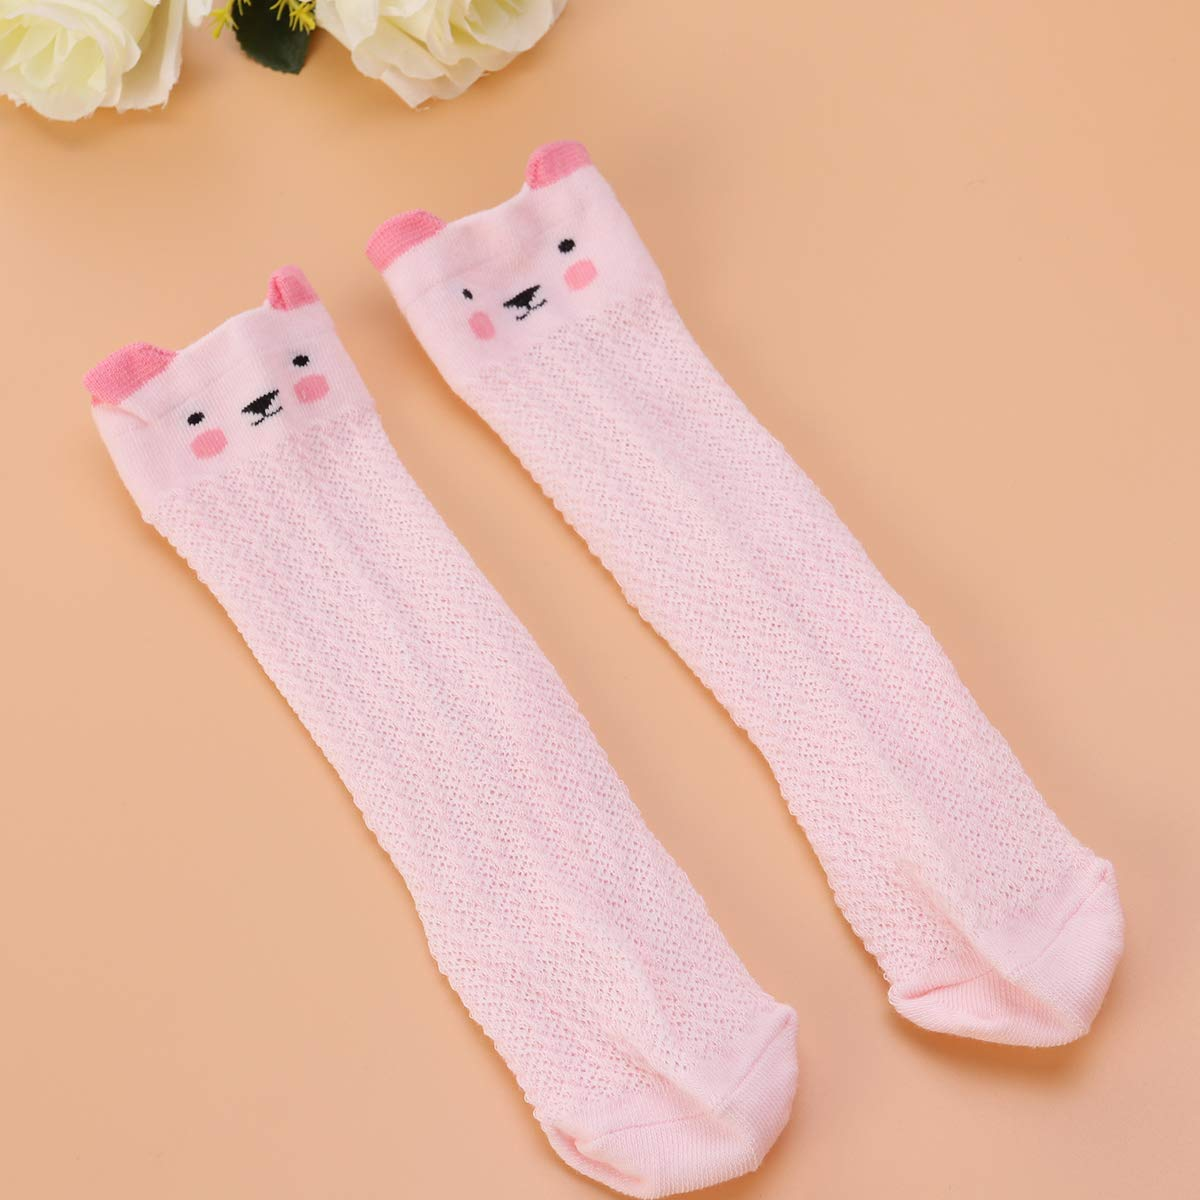 Pink cat Pattern TENDYCOCO Kid Long mesh Stockings Baby Summer Thin Socks Breathable Knee high Stockings for 0-1 Years Old Kid Baby Toddler S Size